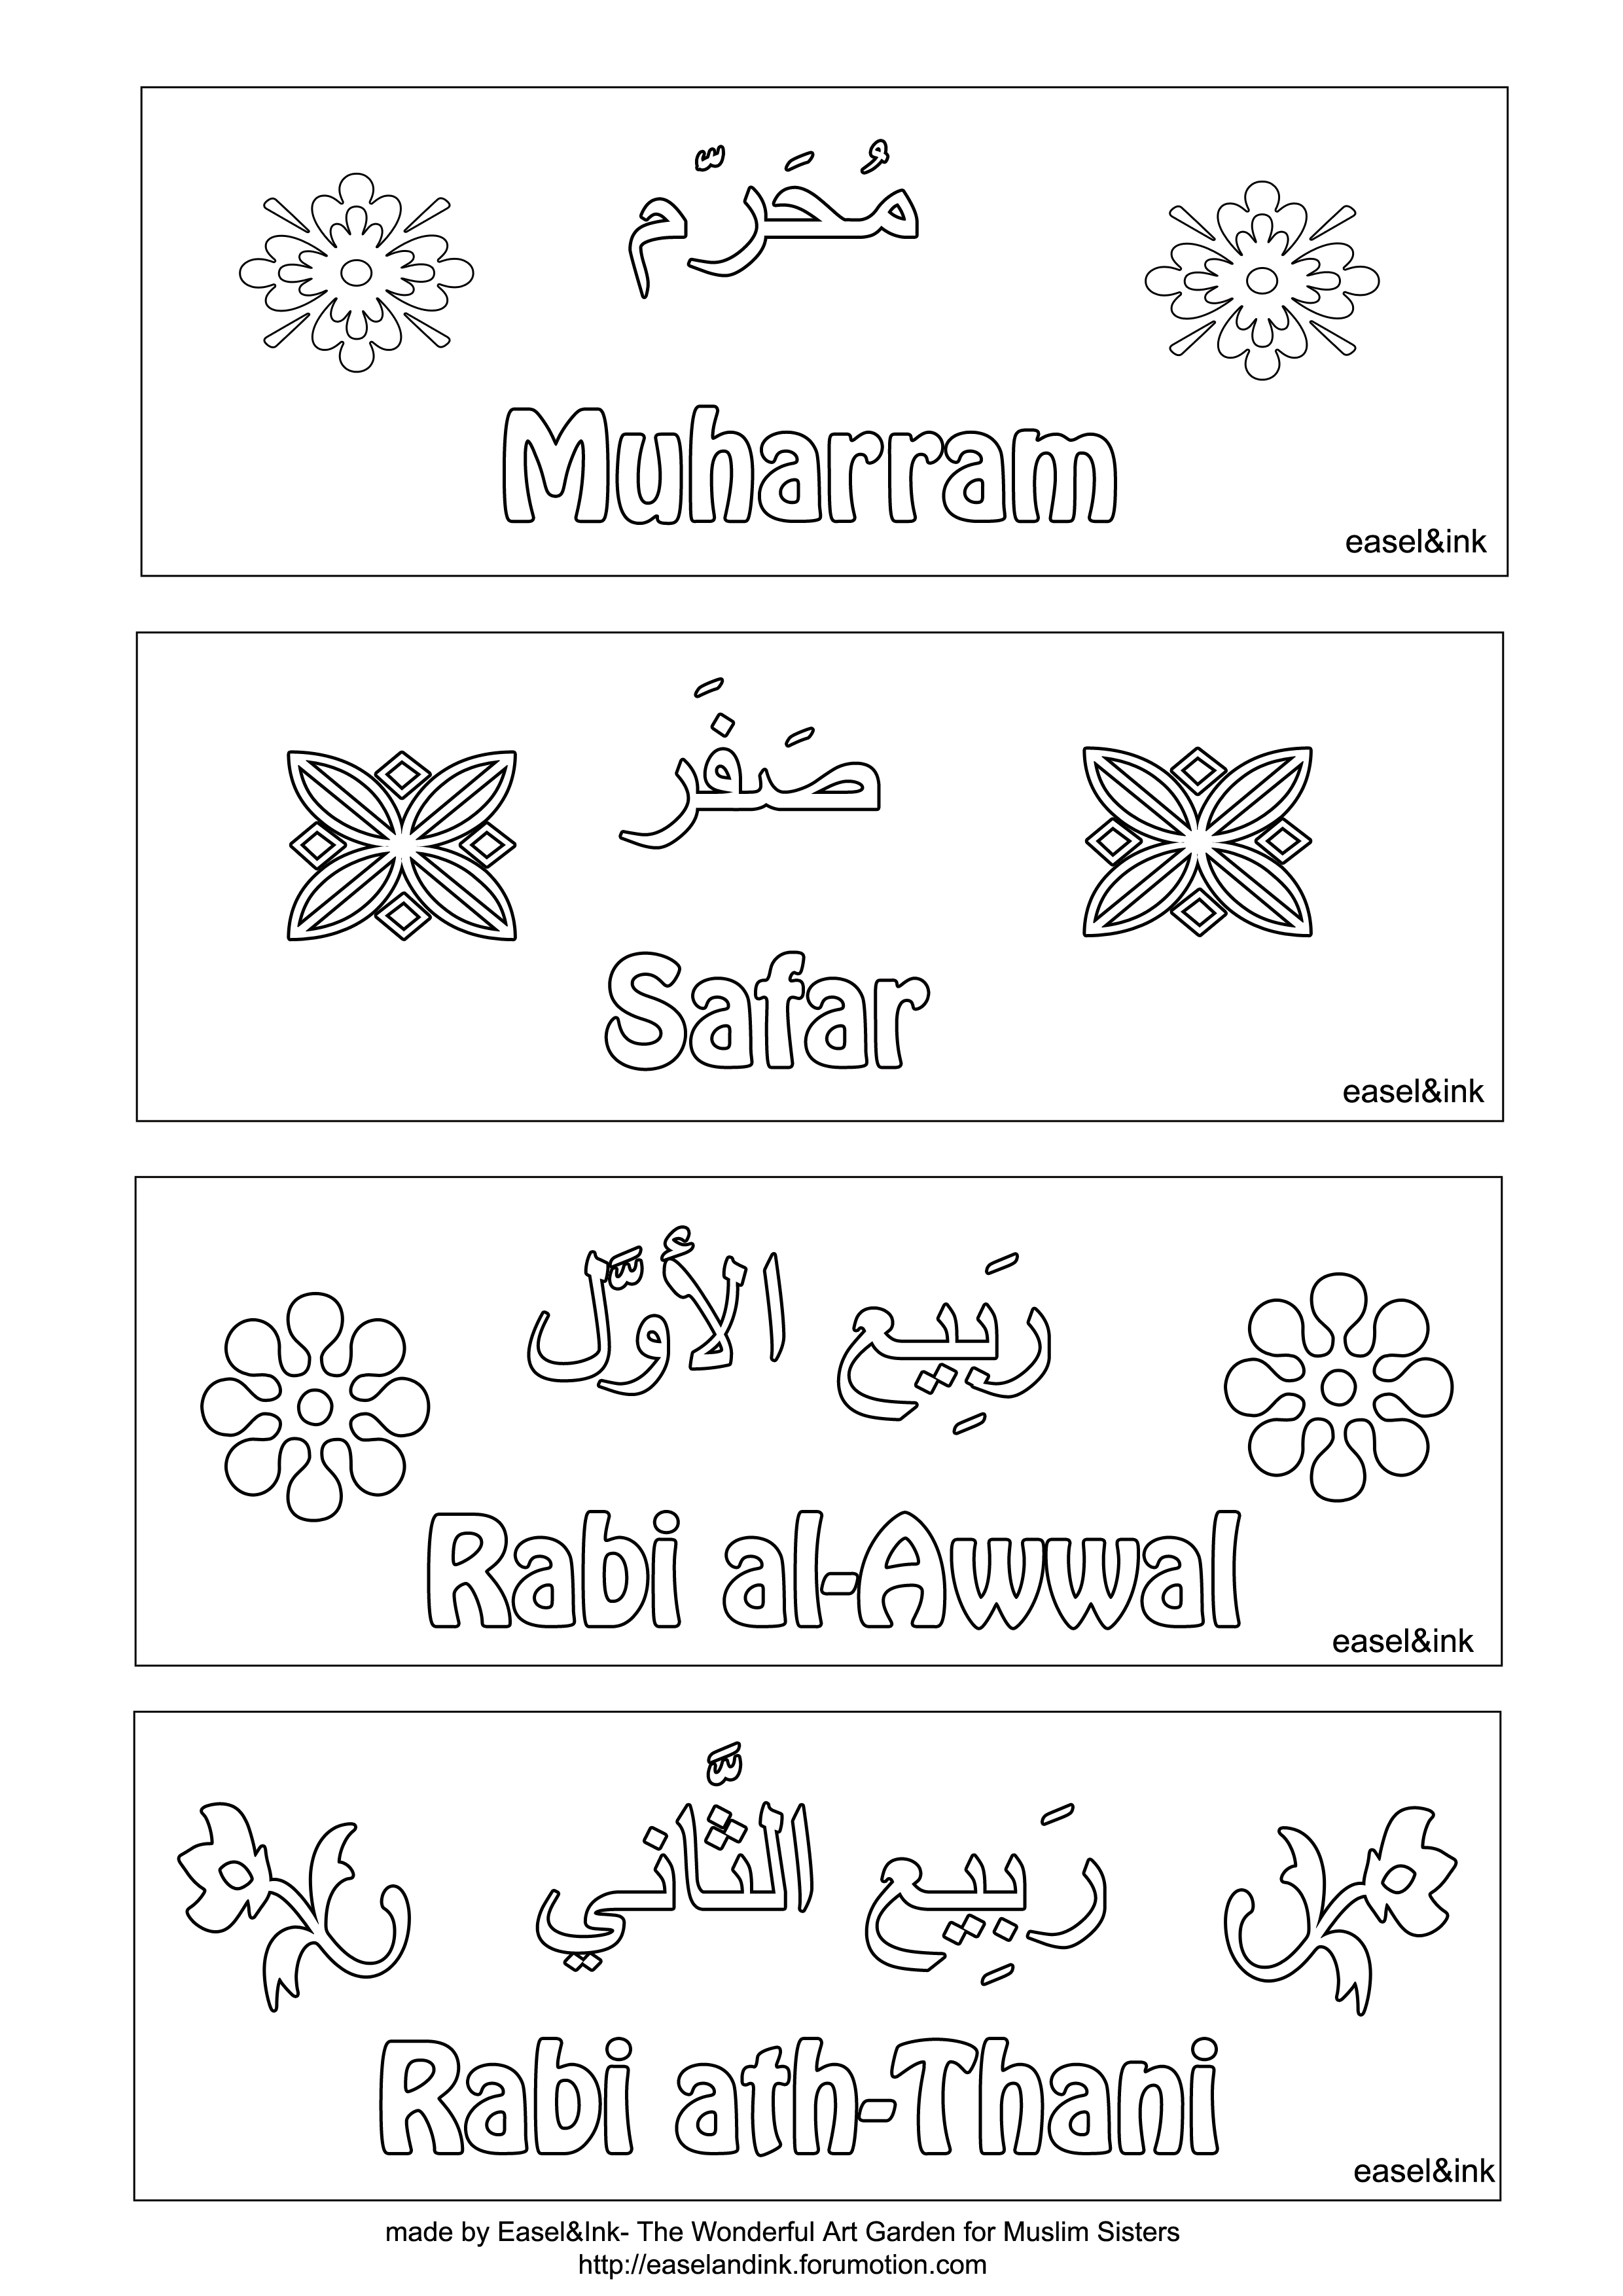 Islamic Months In English And Arabic 1 Muharram 2 Safar 3 Rabi Al Awwal 4 Rabi Ath Thani